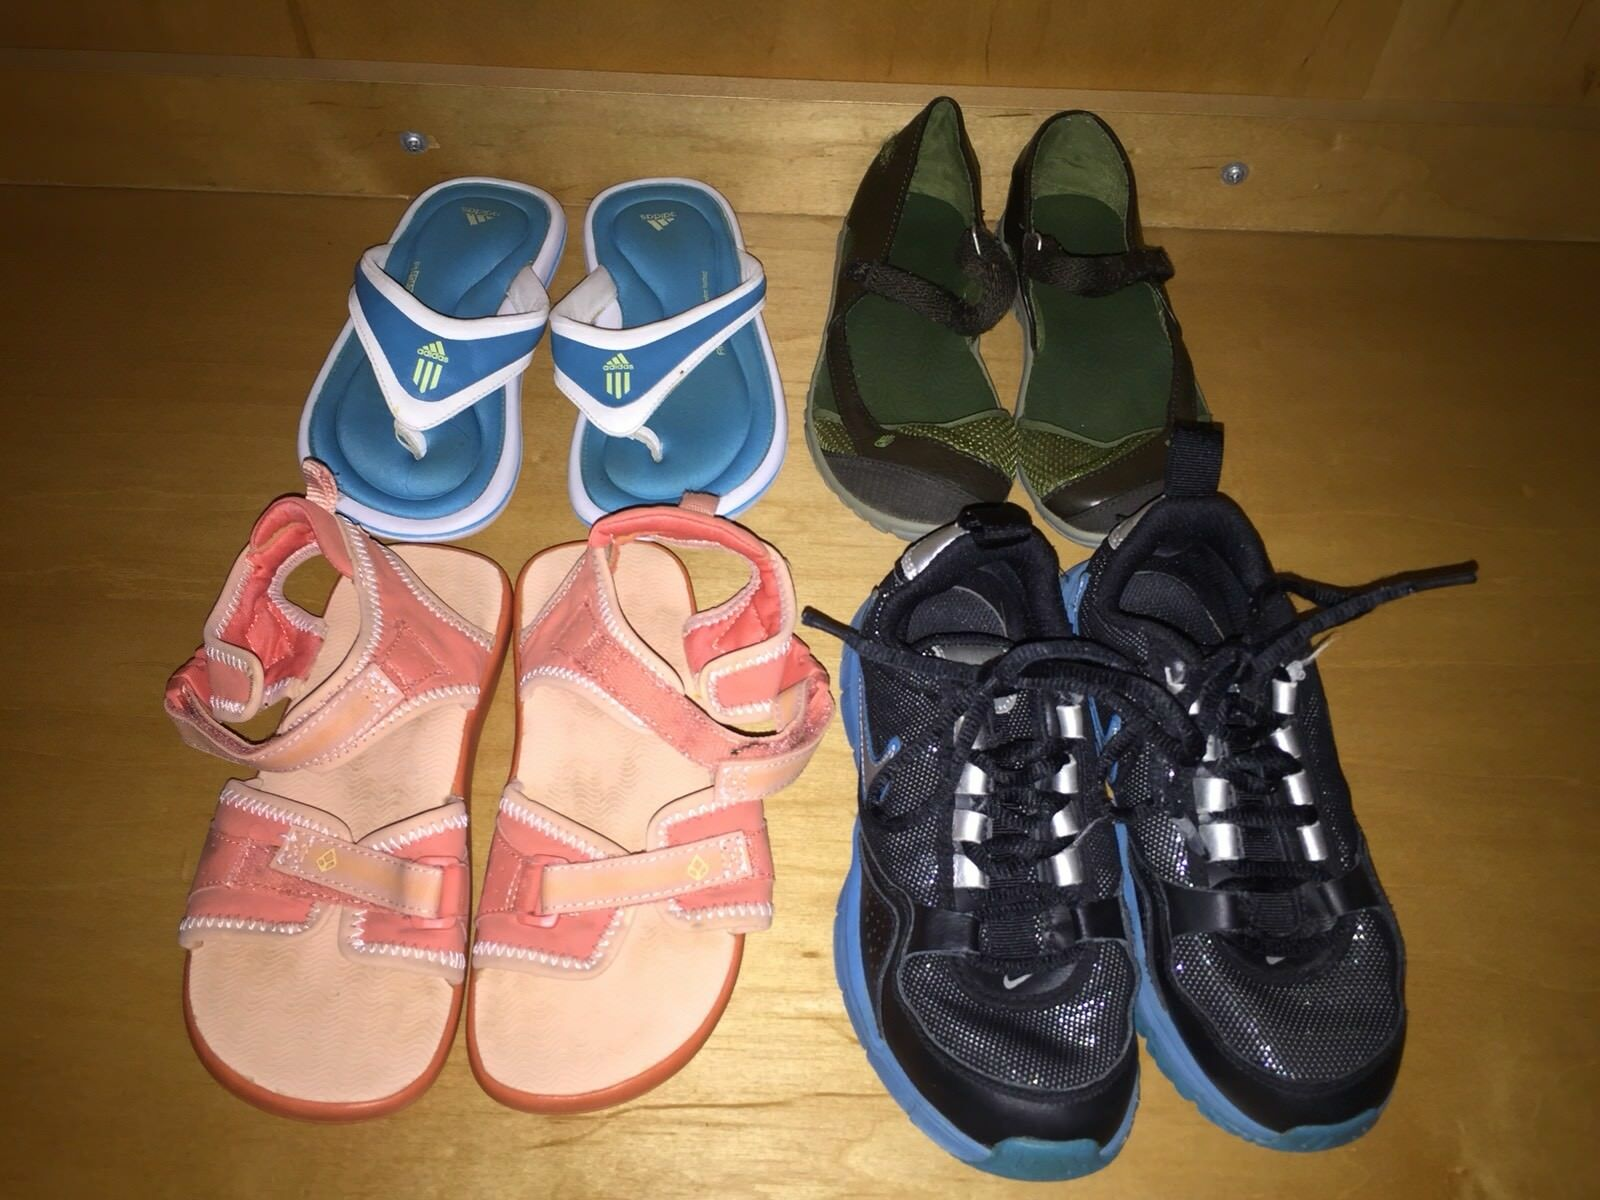 b69ea77ba7dd Lot 4 Girls Shoes Sandals 1 13.5 Teva Nike Adidas Reef Mary Jane Flops Pink  Blue 1 of 6Only 1 available ...